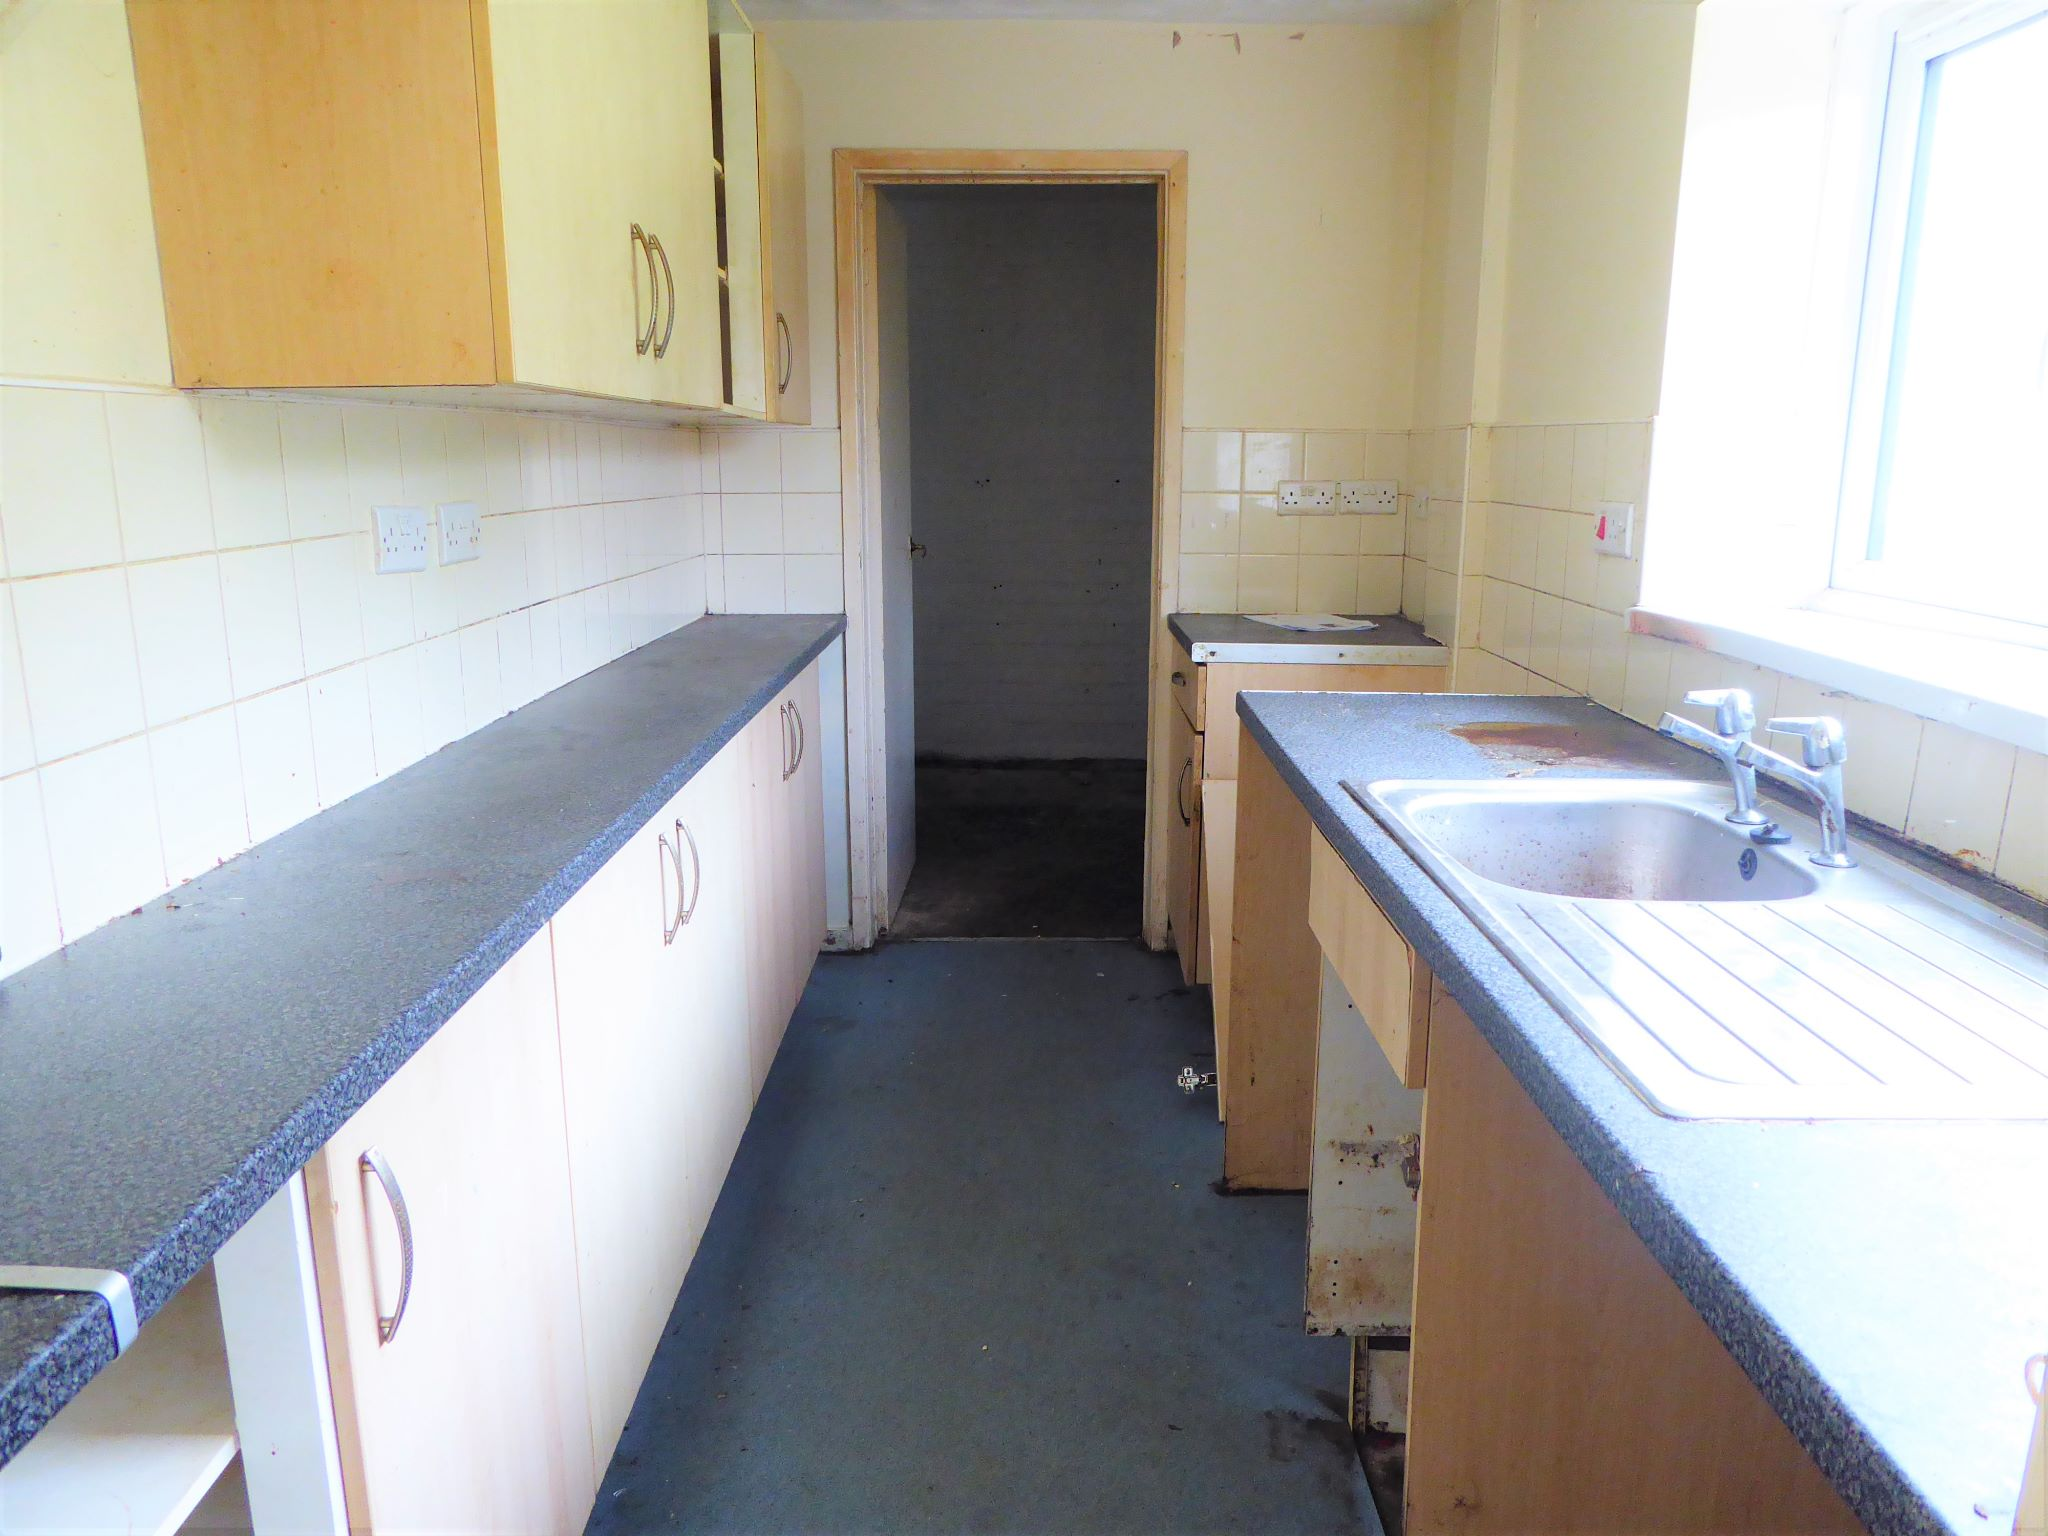 3 bedroom mid terraced house SSTC in Abergele - Photograph 3